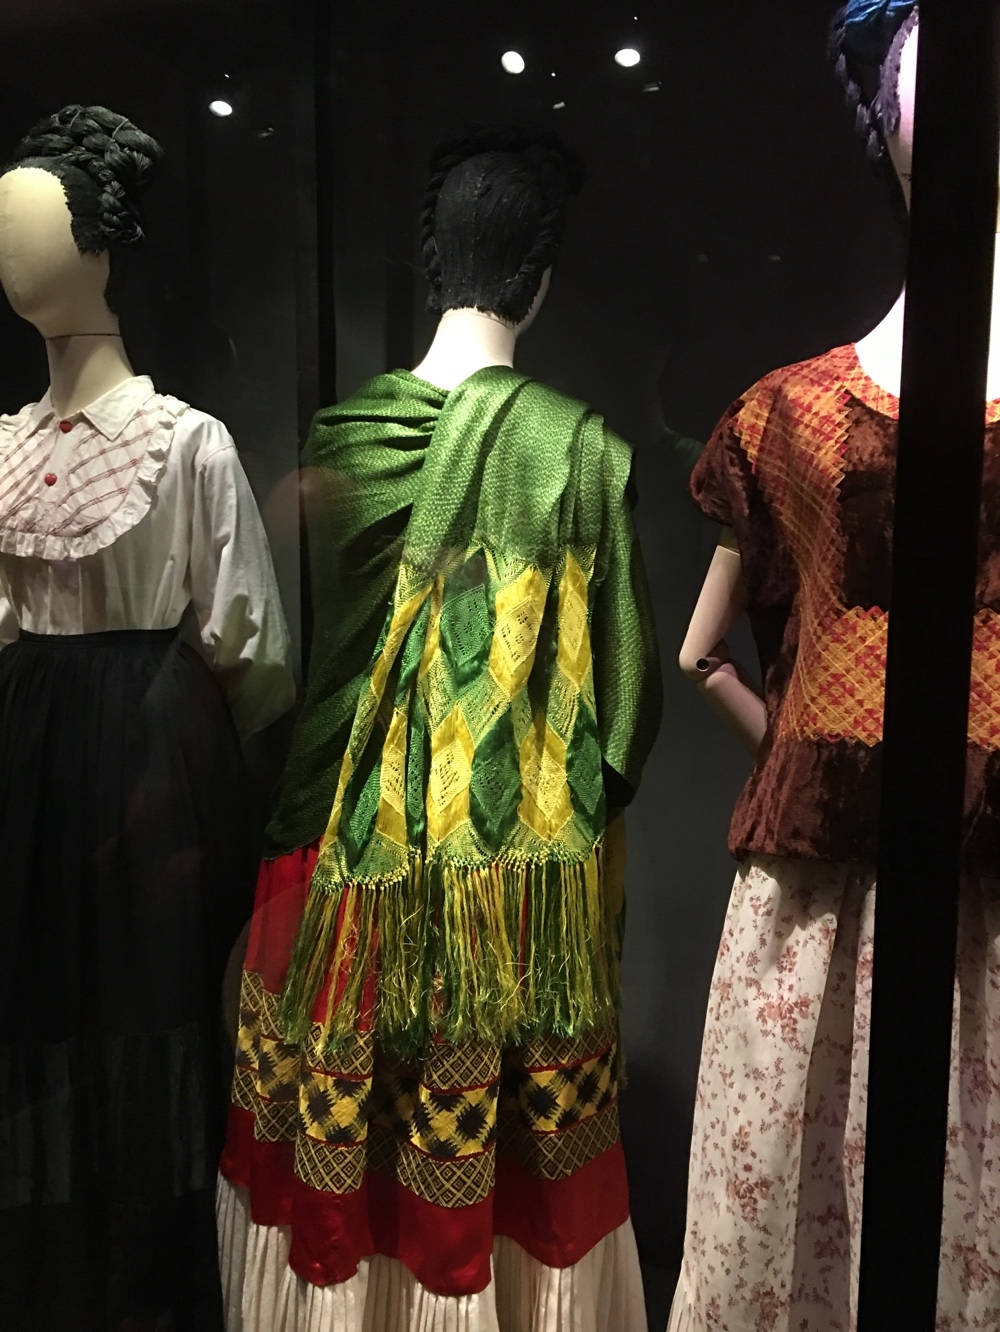 3 Frida Kahlo dresses from rear